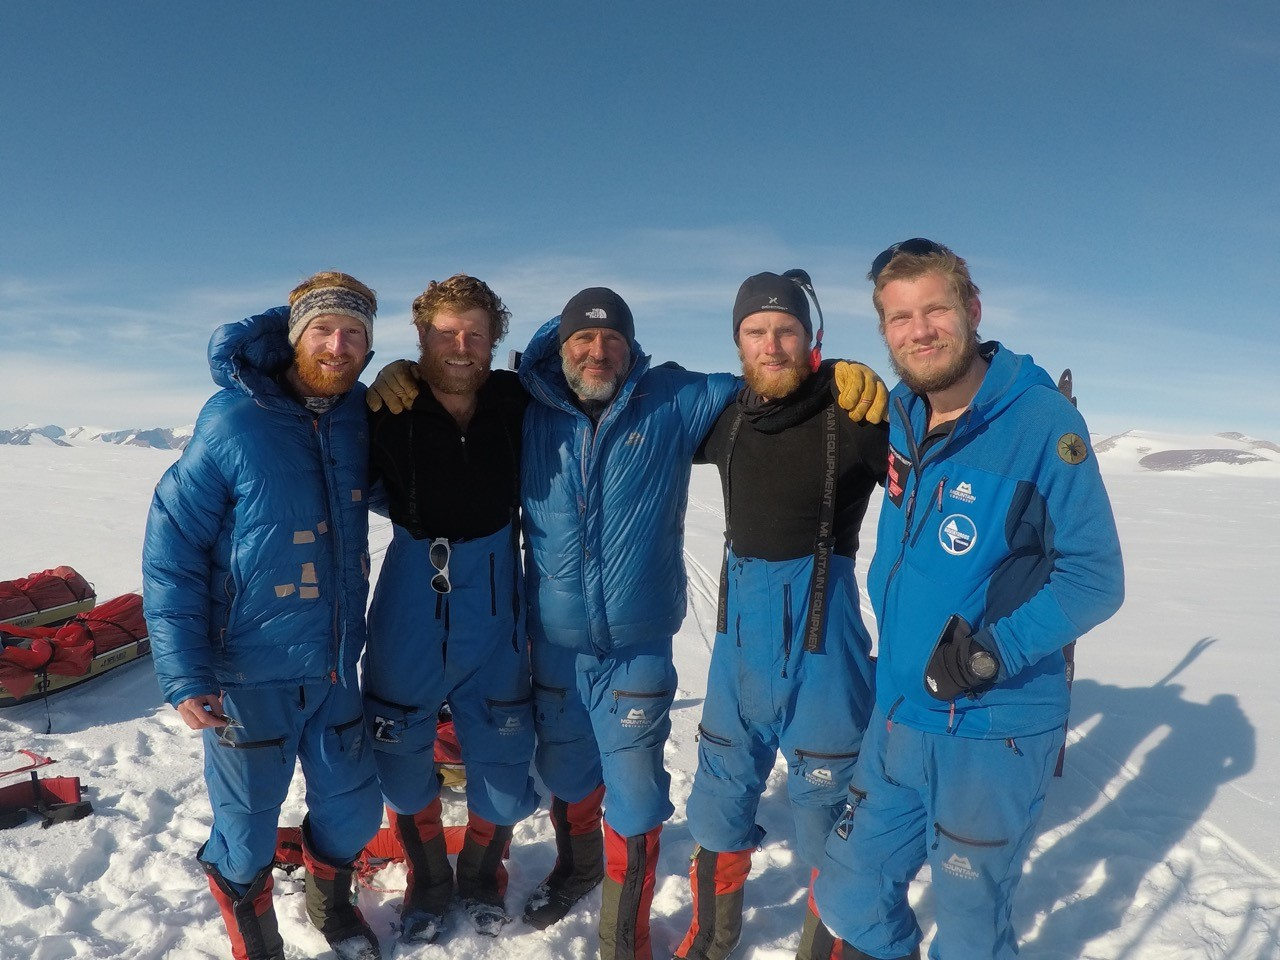 The SPEAR17 team at the end of their journey